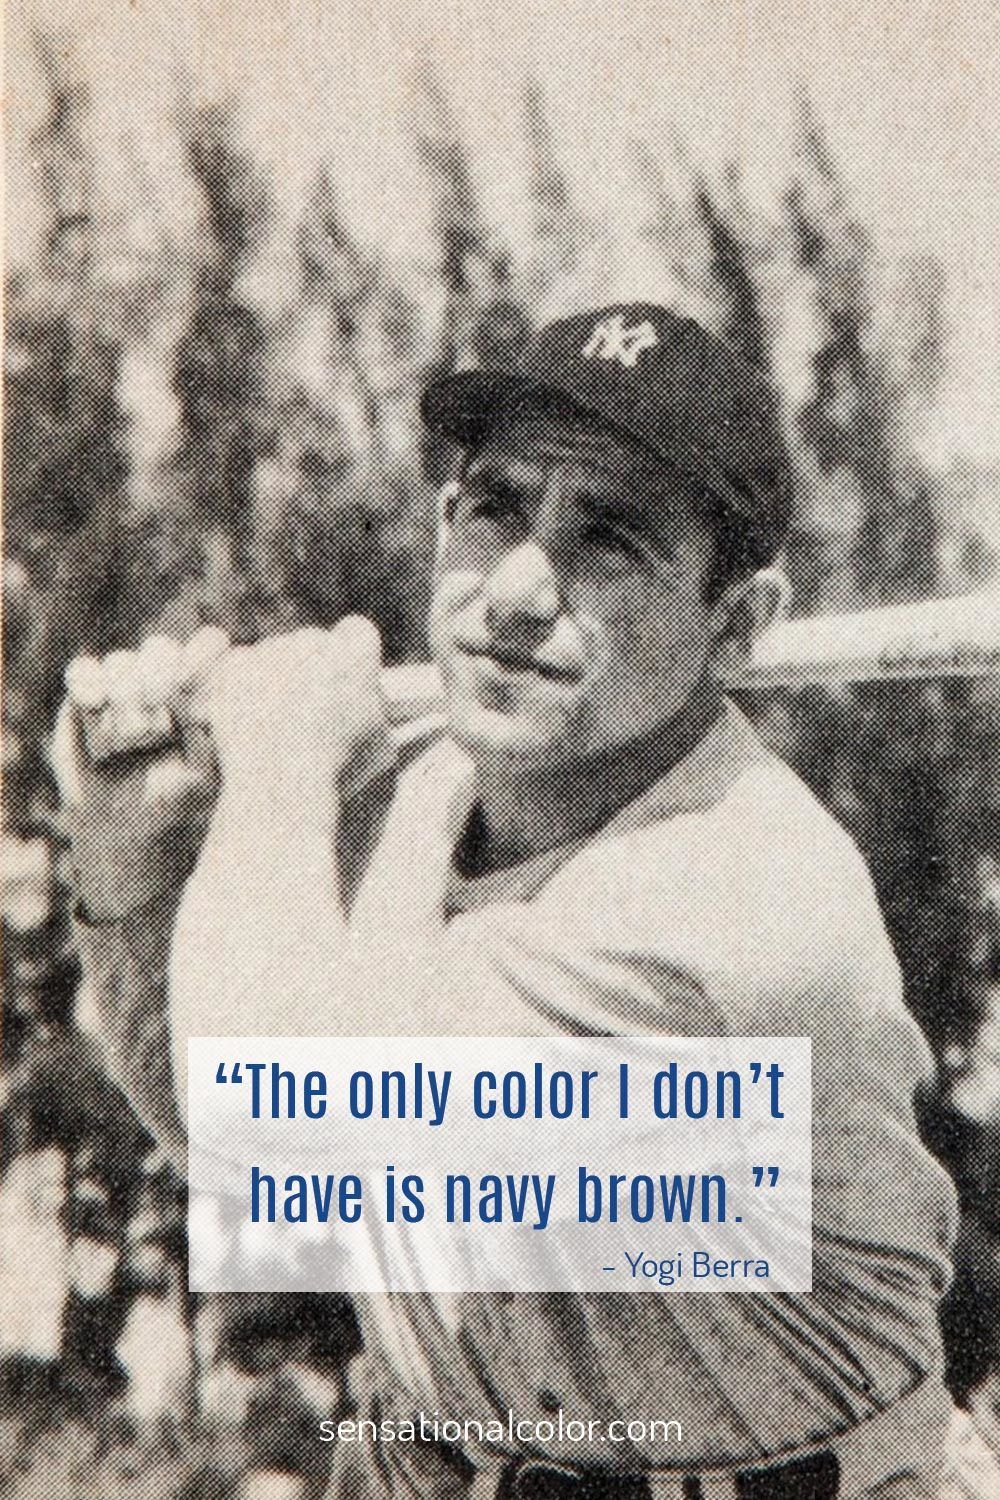 """The only color I don't have is navy brown"" - Yogi Berra"